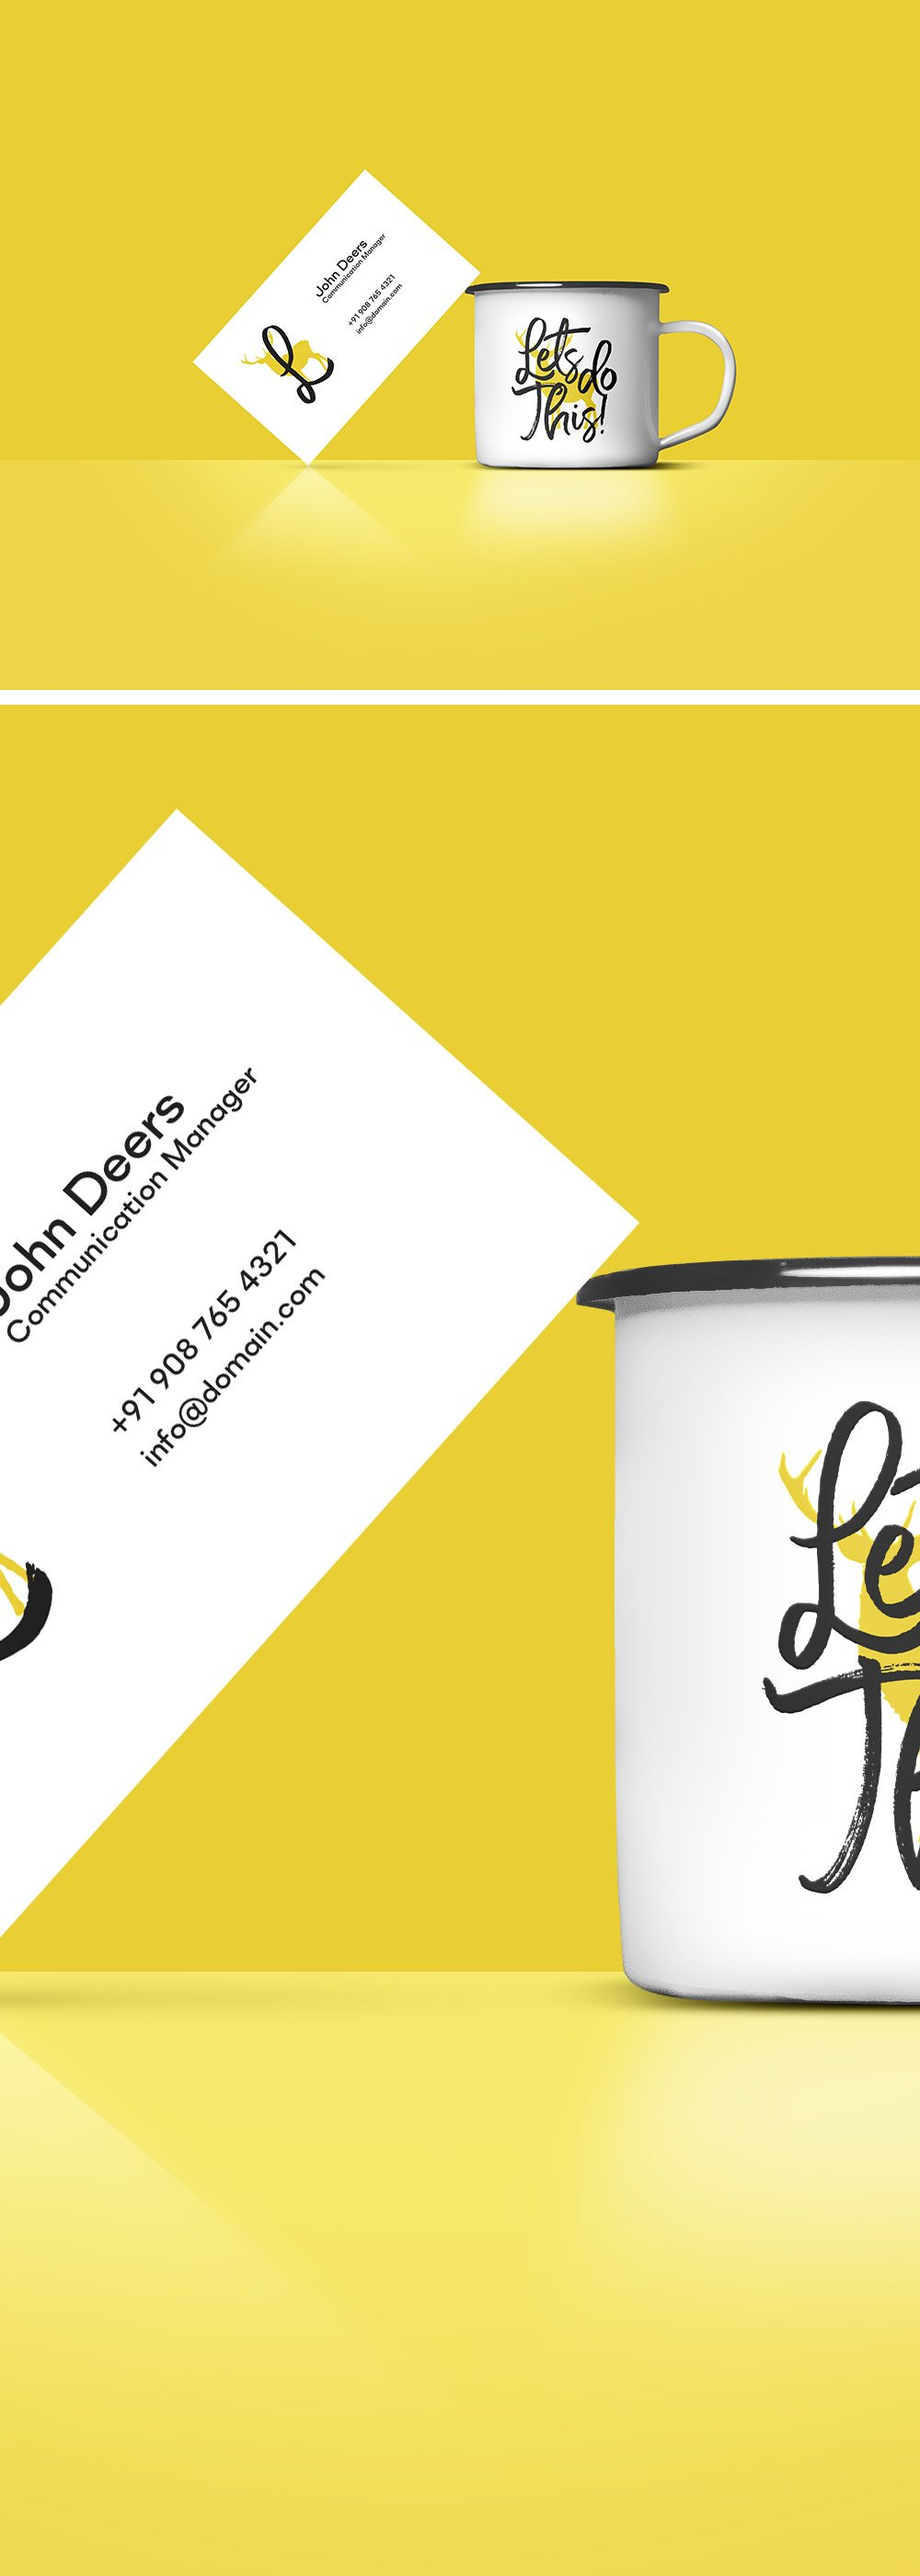 Creative Free Business Card And Coffee Cup Mockup